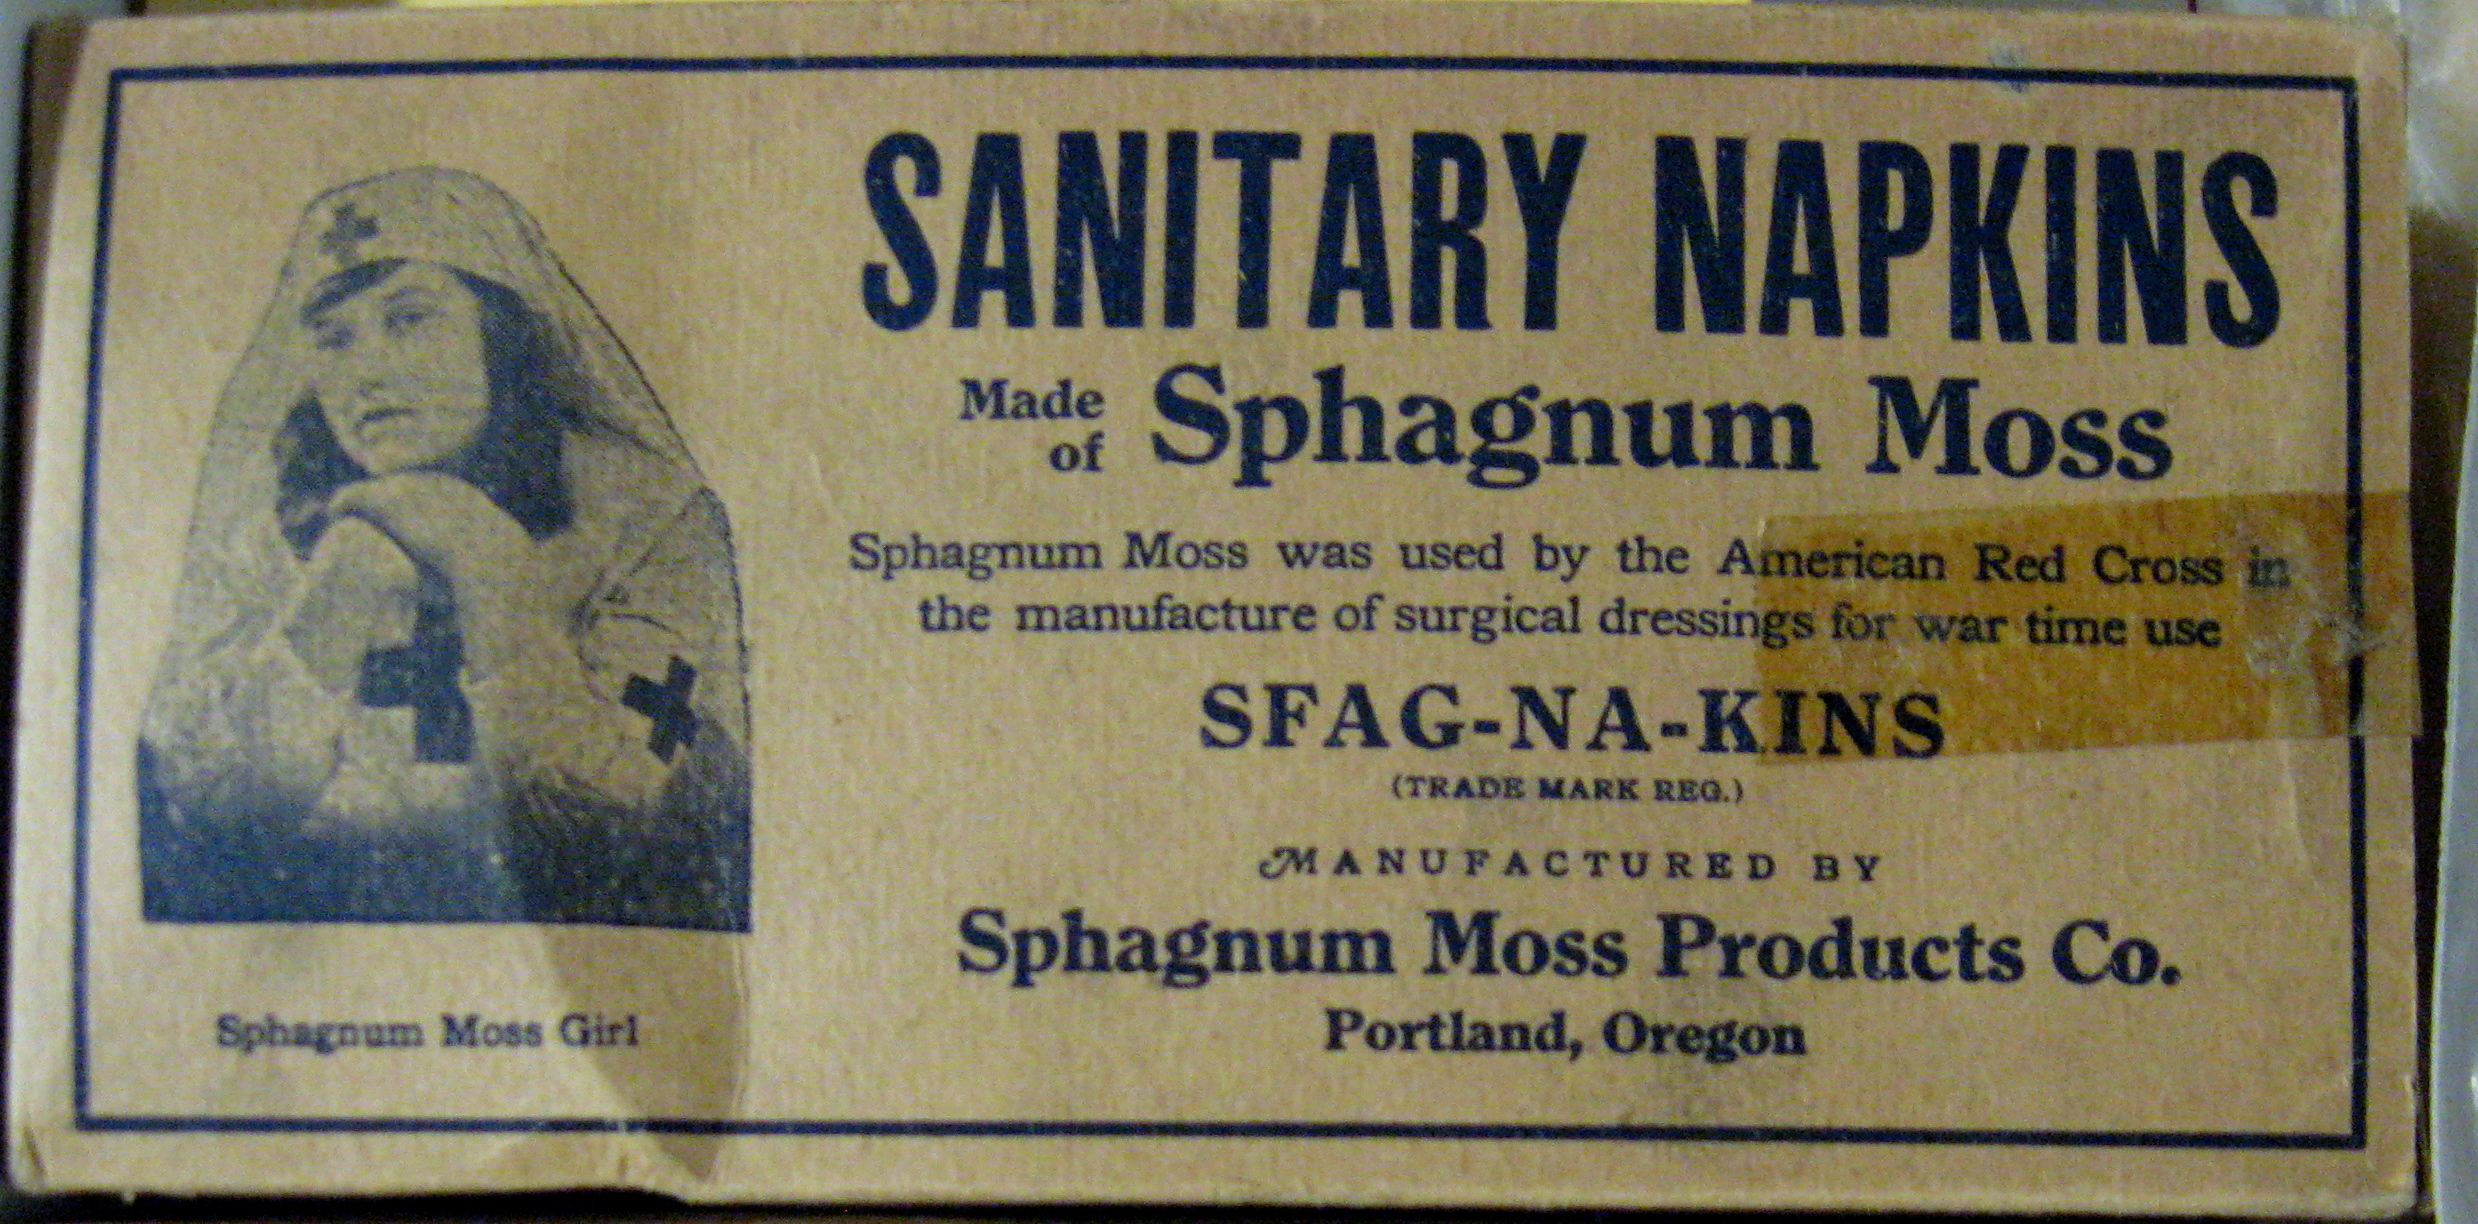 The Smithsonian Menstrual Archive